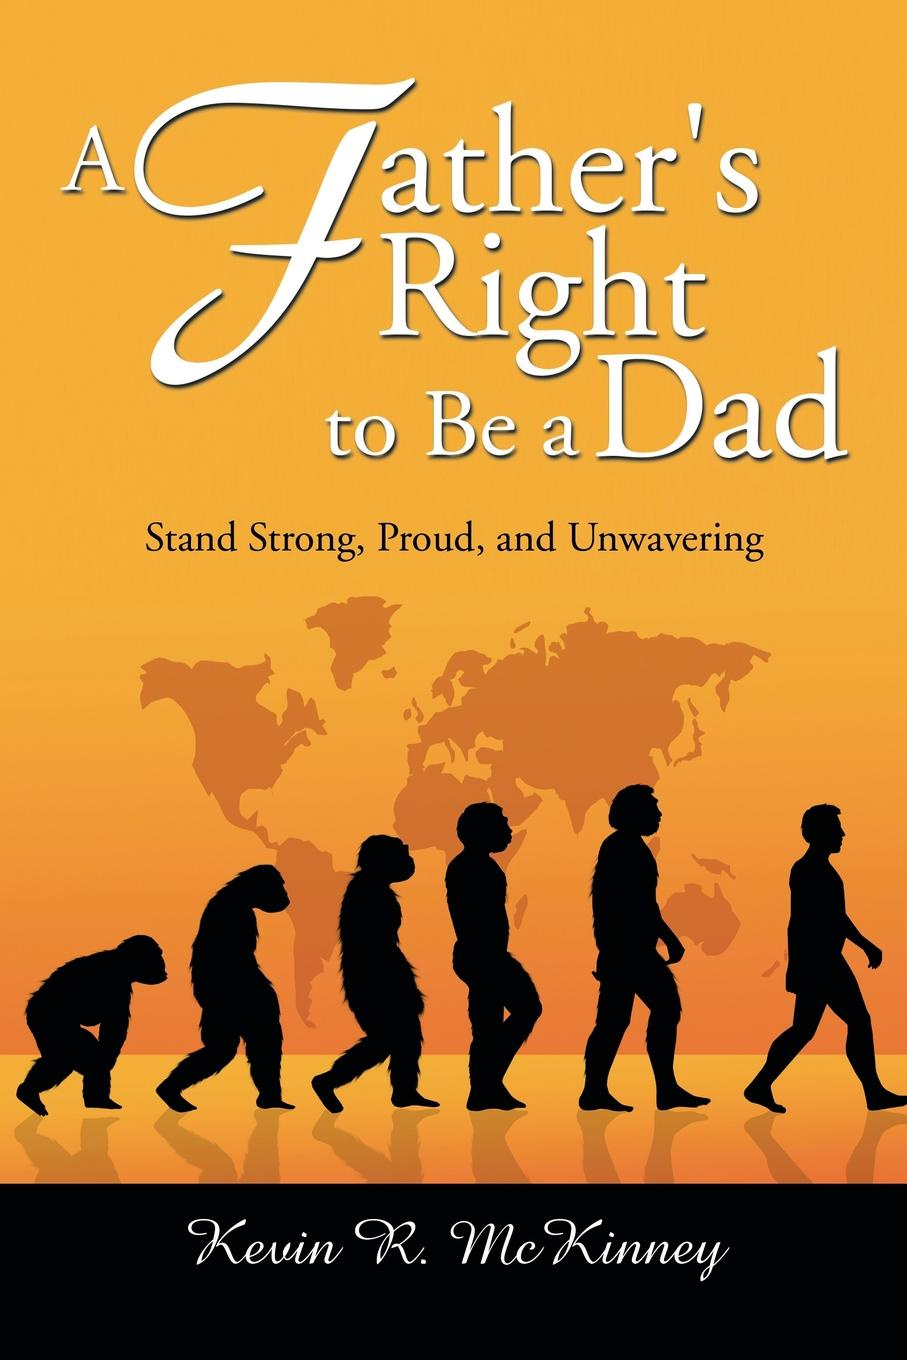 Kevin McKinney, R. McKinney A Fathers Right to Be a Dad. Stand Strong, Proud, and Unwavering